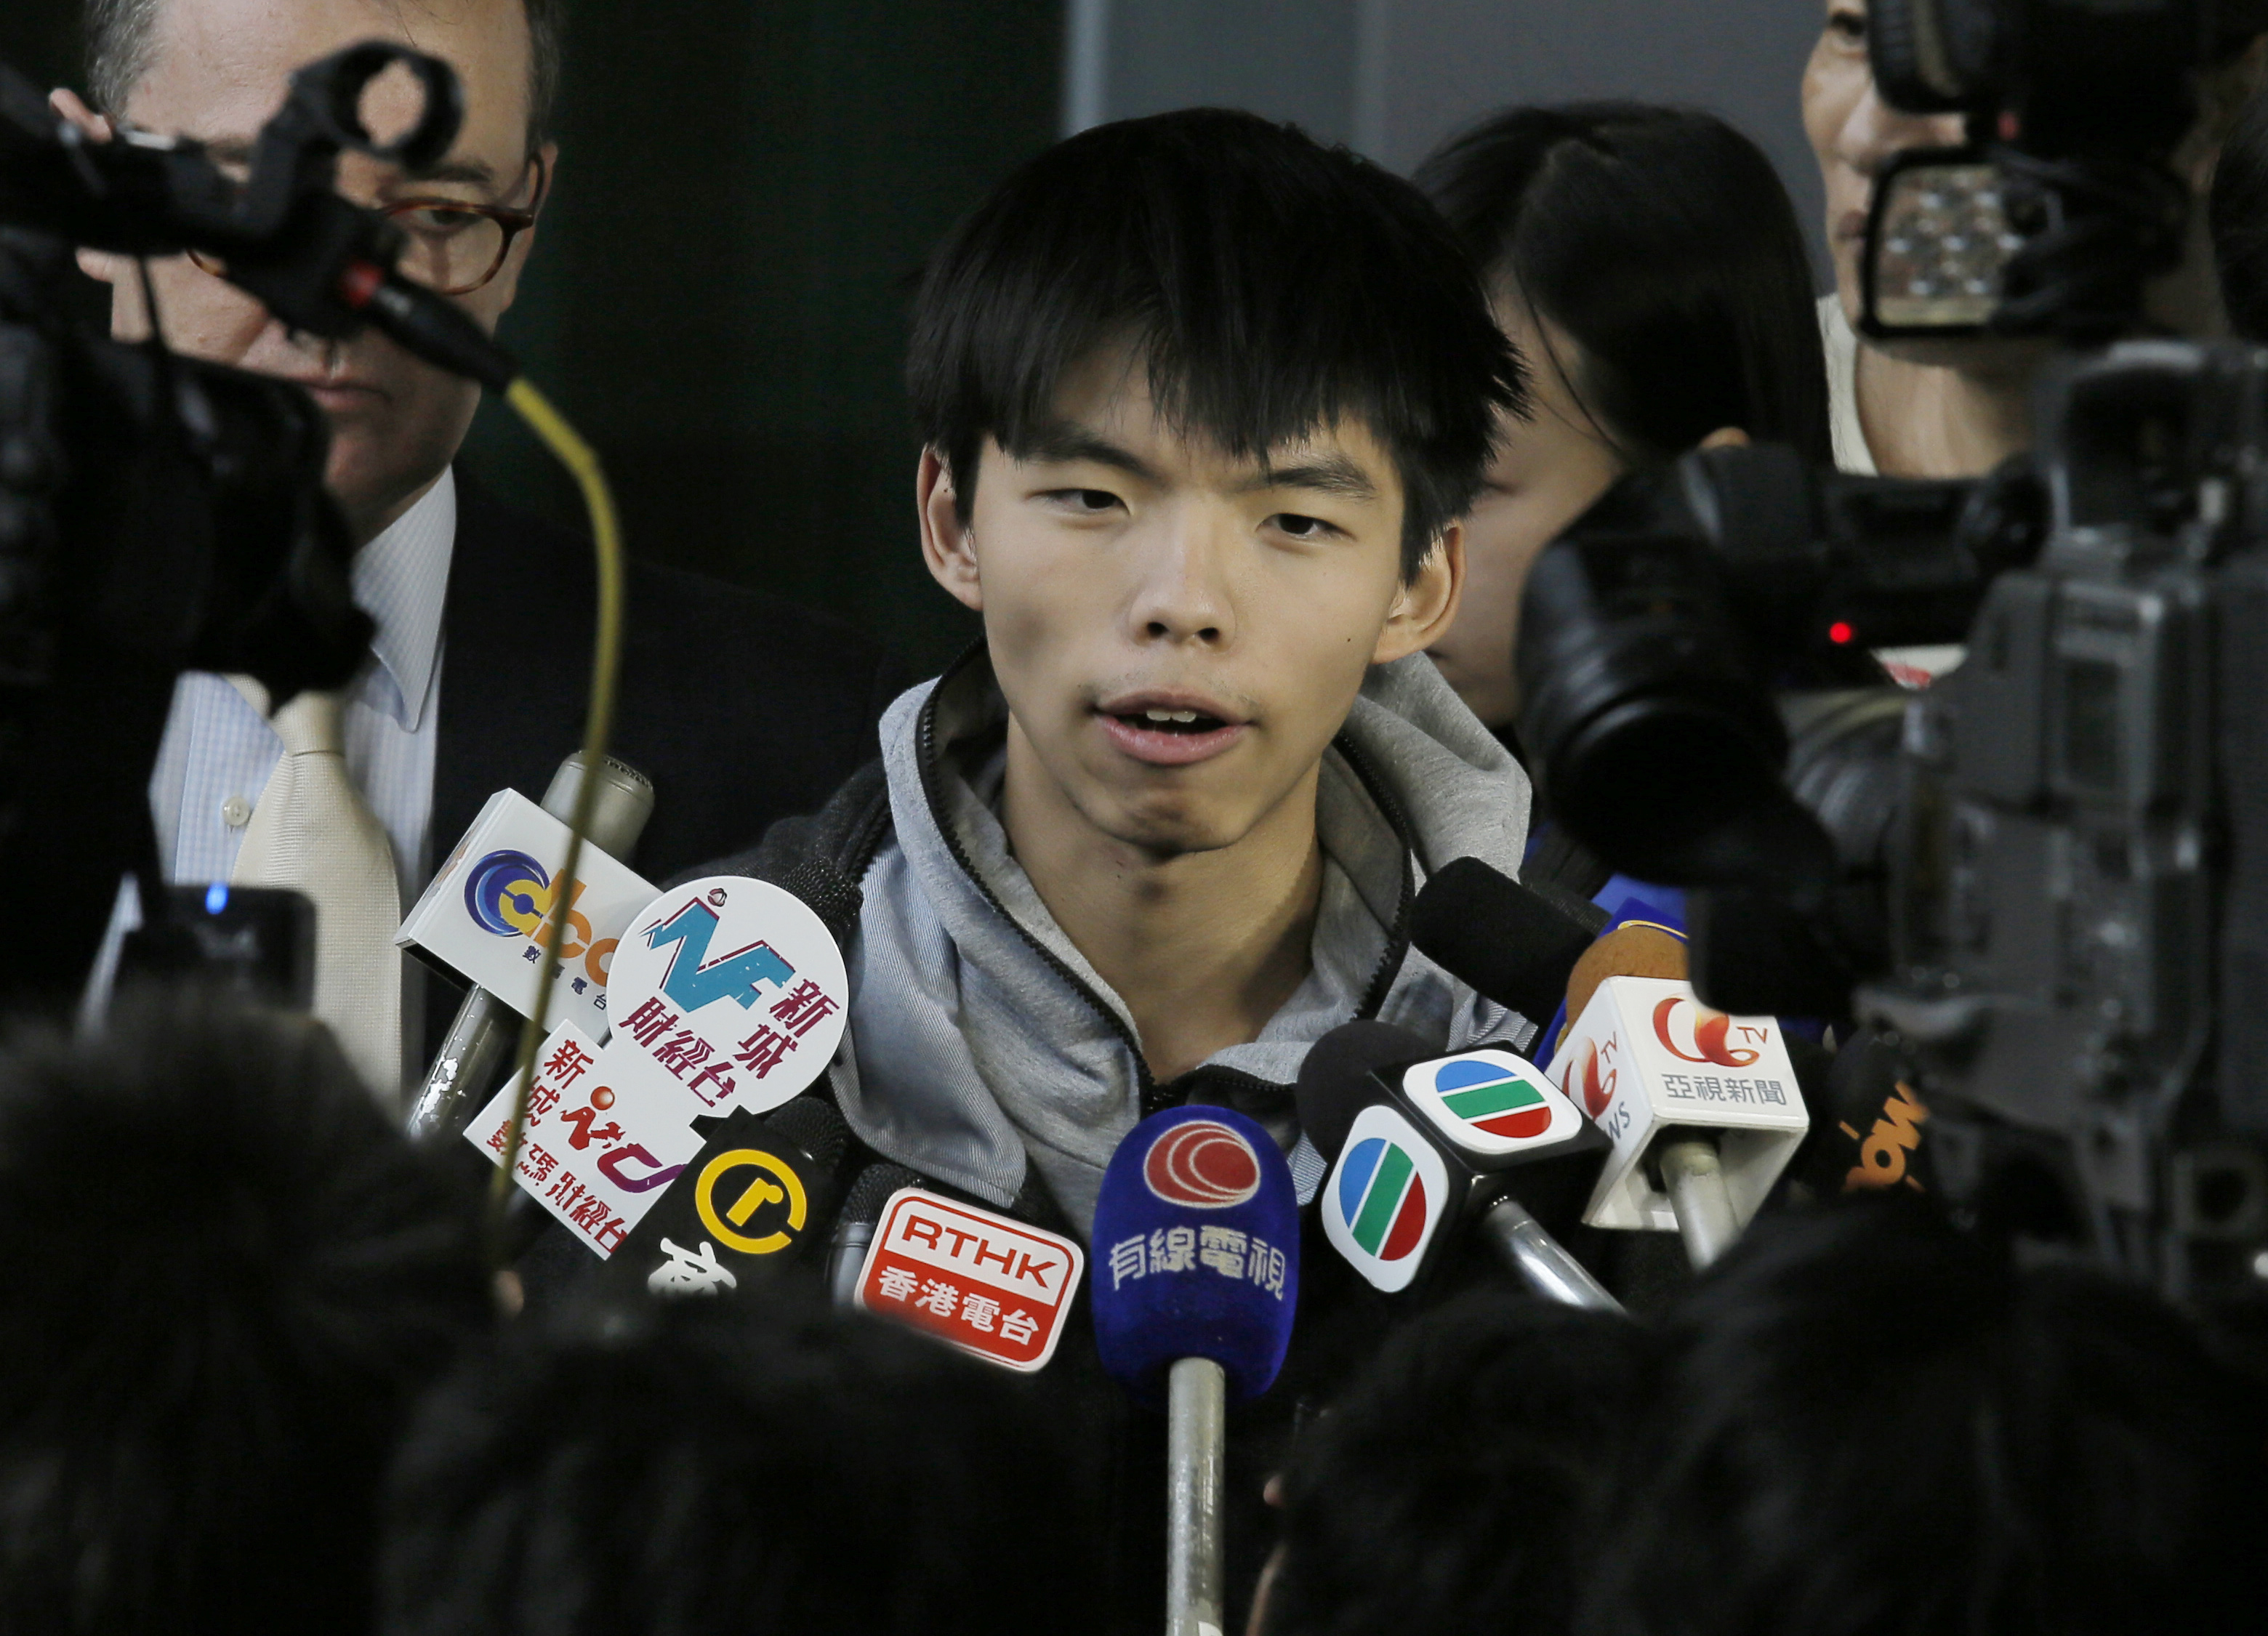 Prominent Hong Kong student protest leader Joshua Wong talks to reporters outside a court in Hong Kong on Nov. 27, 2014